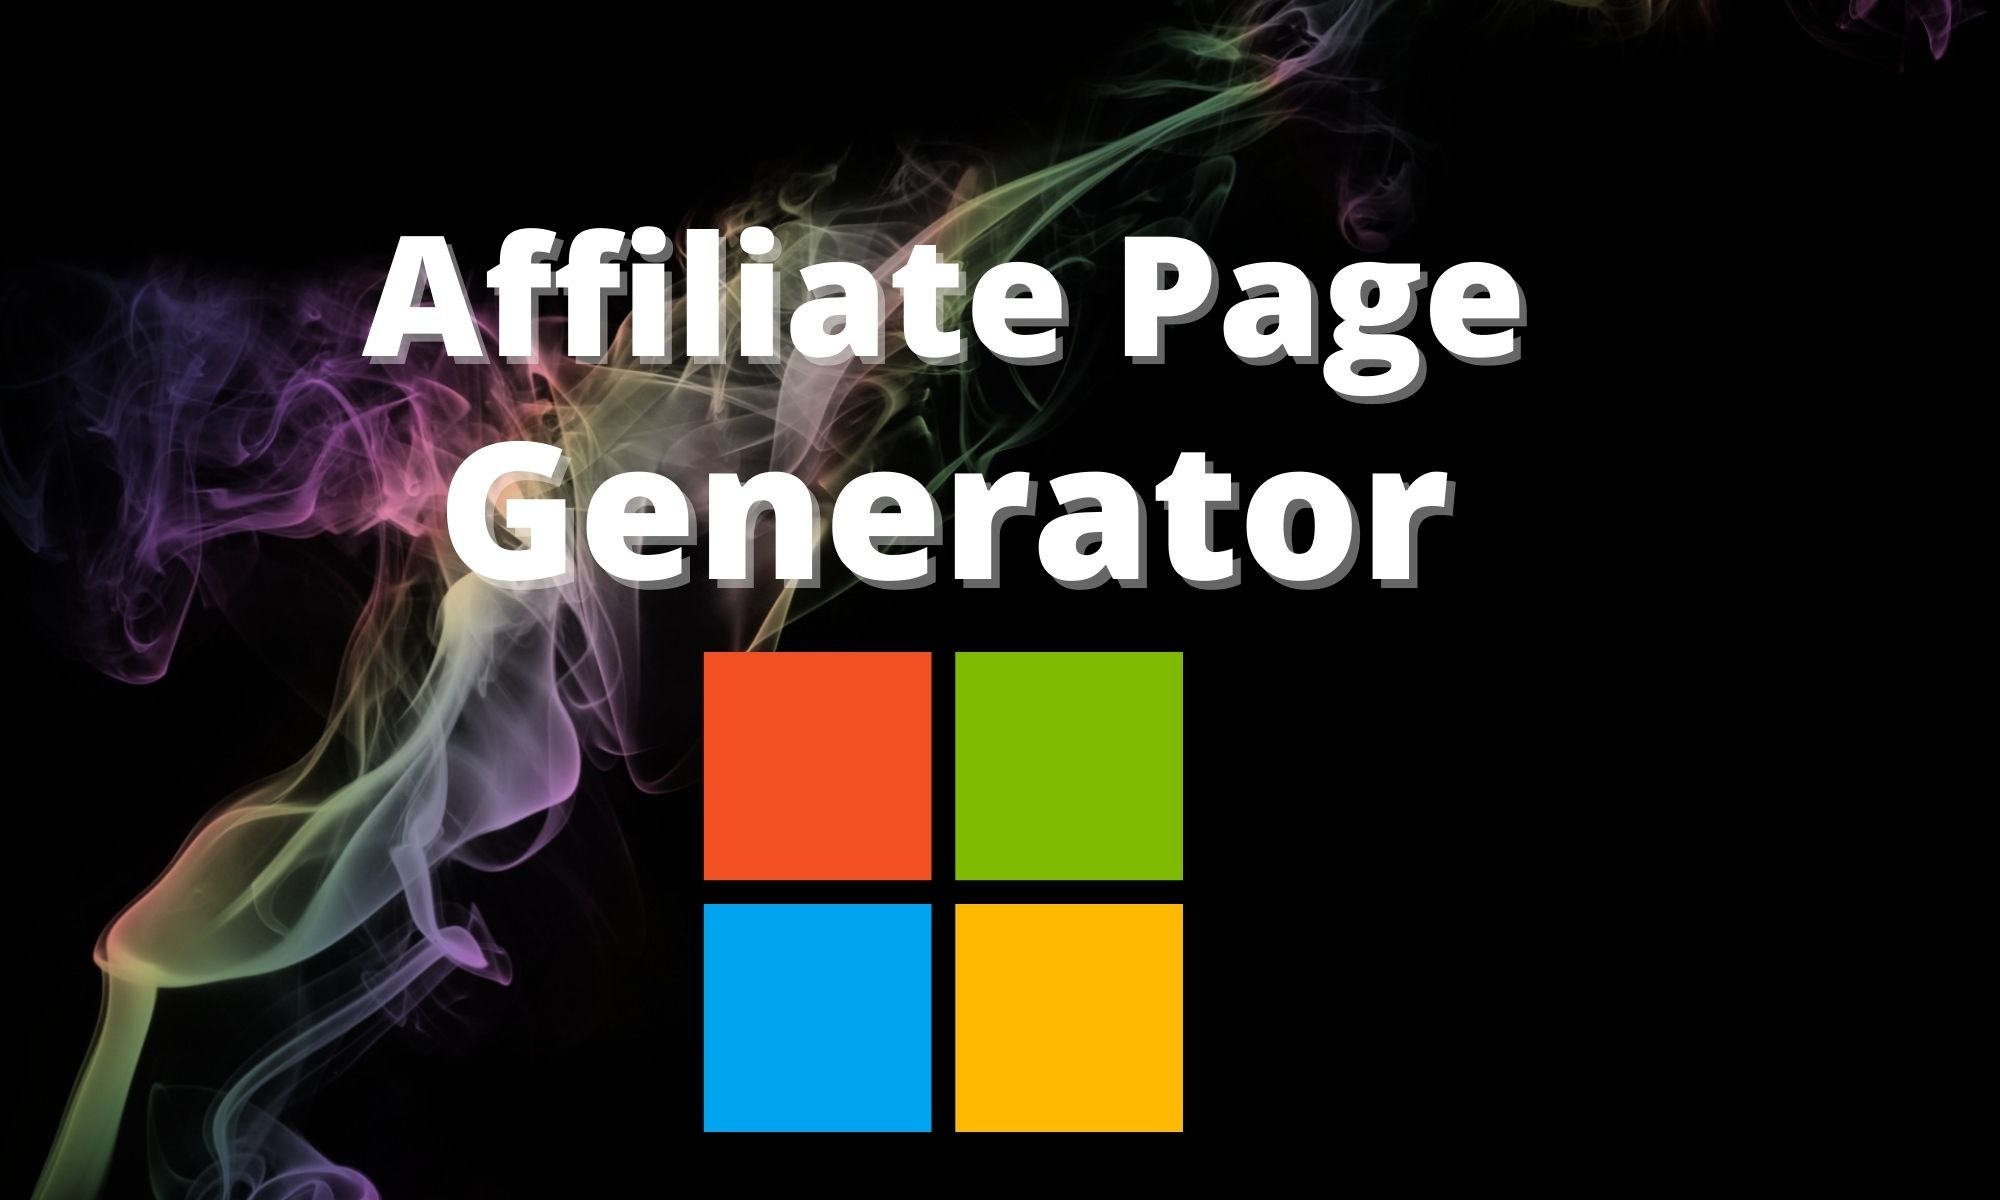 Easy Affiliate Page Generator for Windows all